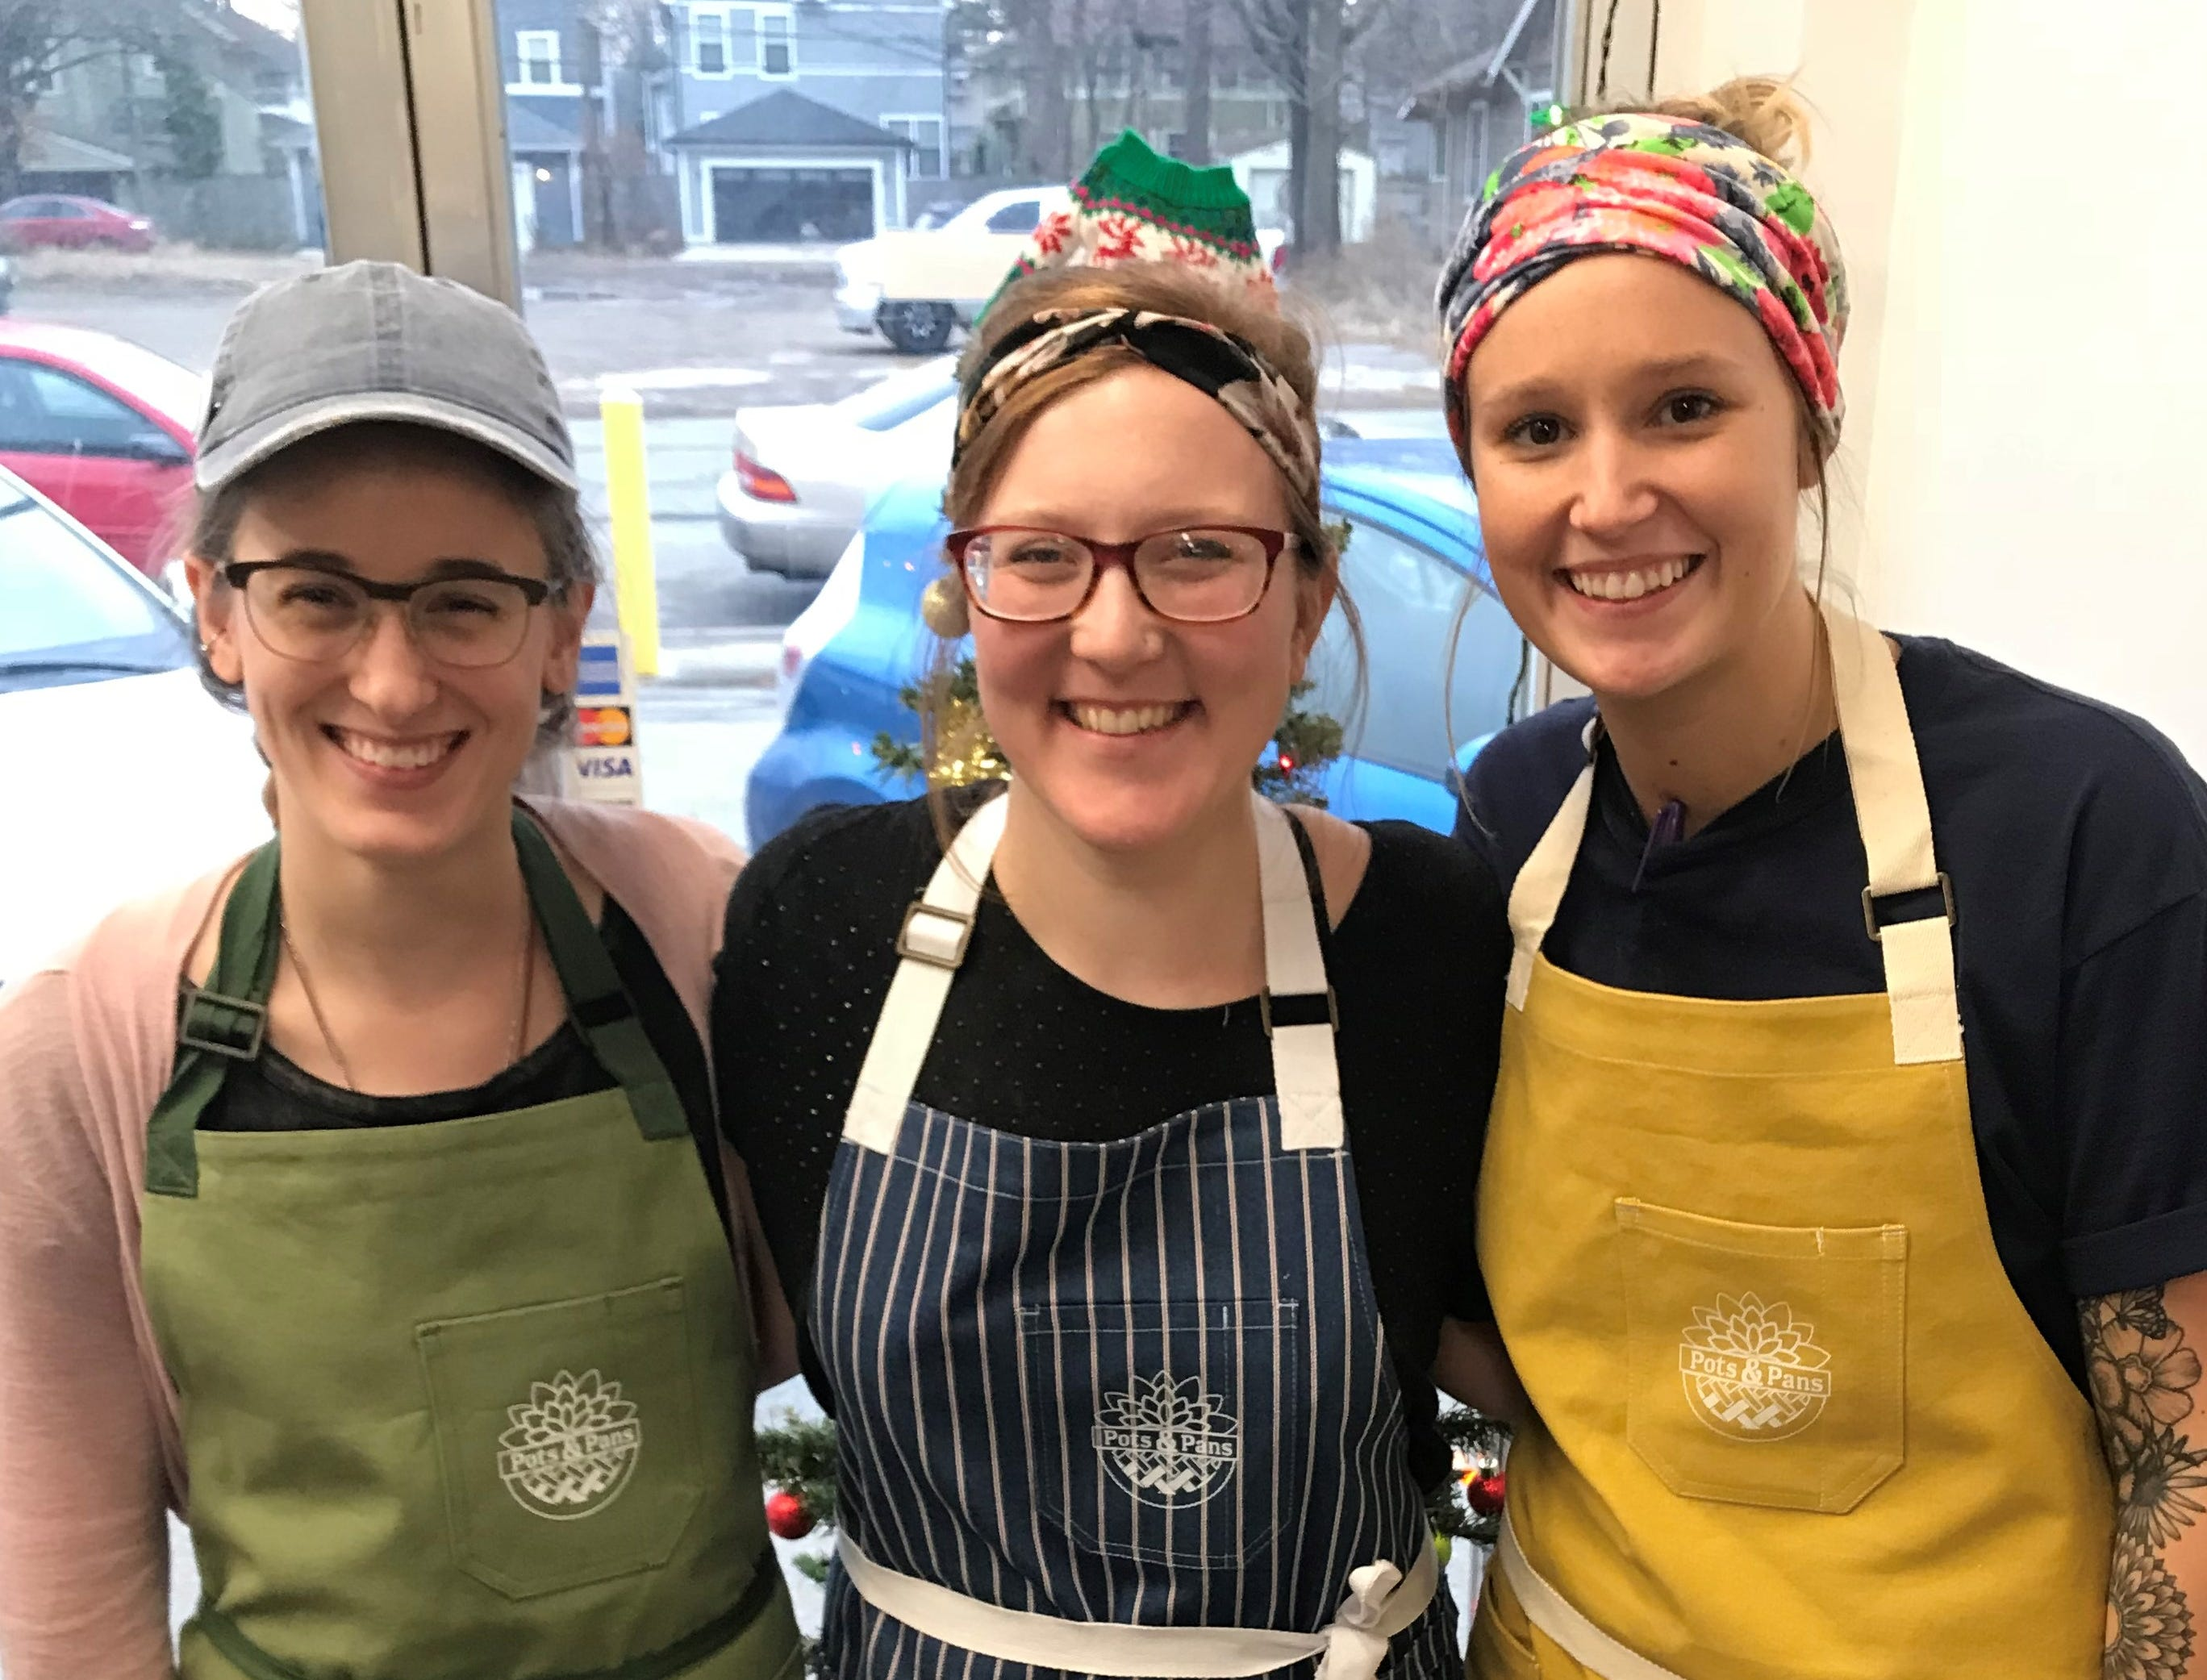 Pots & Pans Pie Co. owner Clarissa Morley (center) with bakers Sydney Moore and Chelsea Wall. After two years of selling pies at Indianapolis-area farmers markets, Morley opened a cafe and retail shop Dec. 1, 2018. The store, south of Broad Ripple, is at 915 N. College  Ave., at 49th Street.